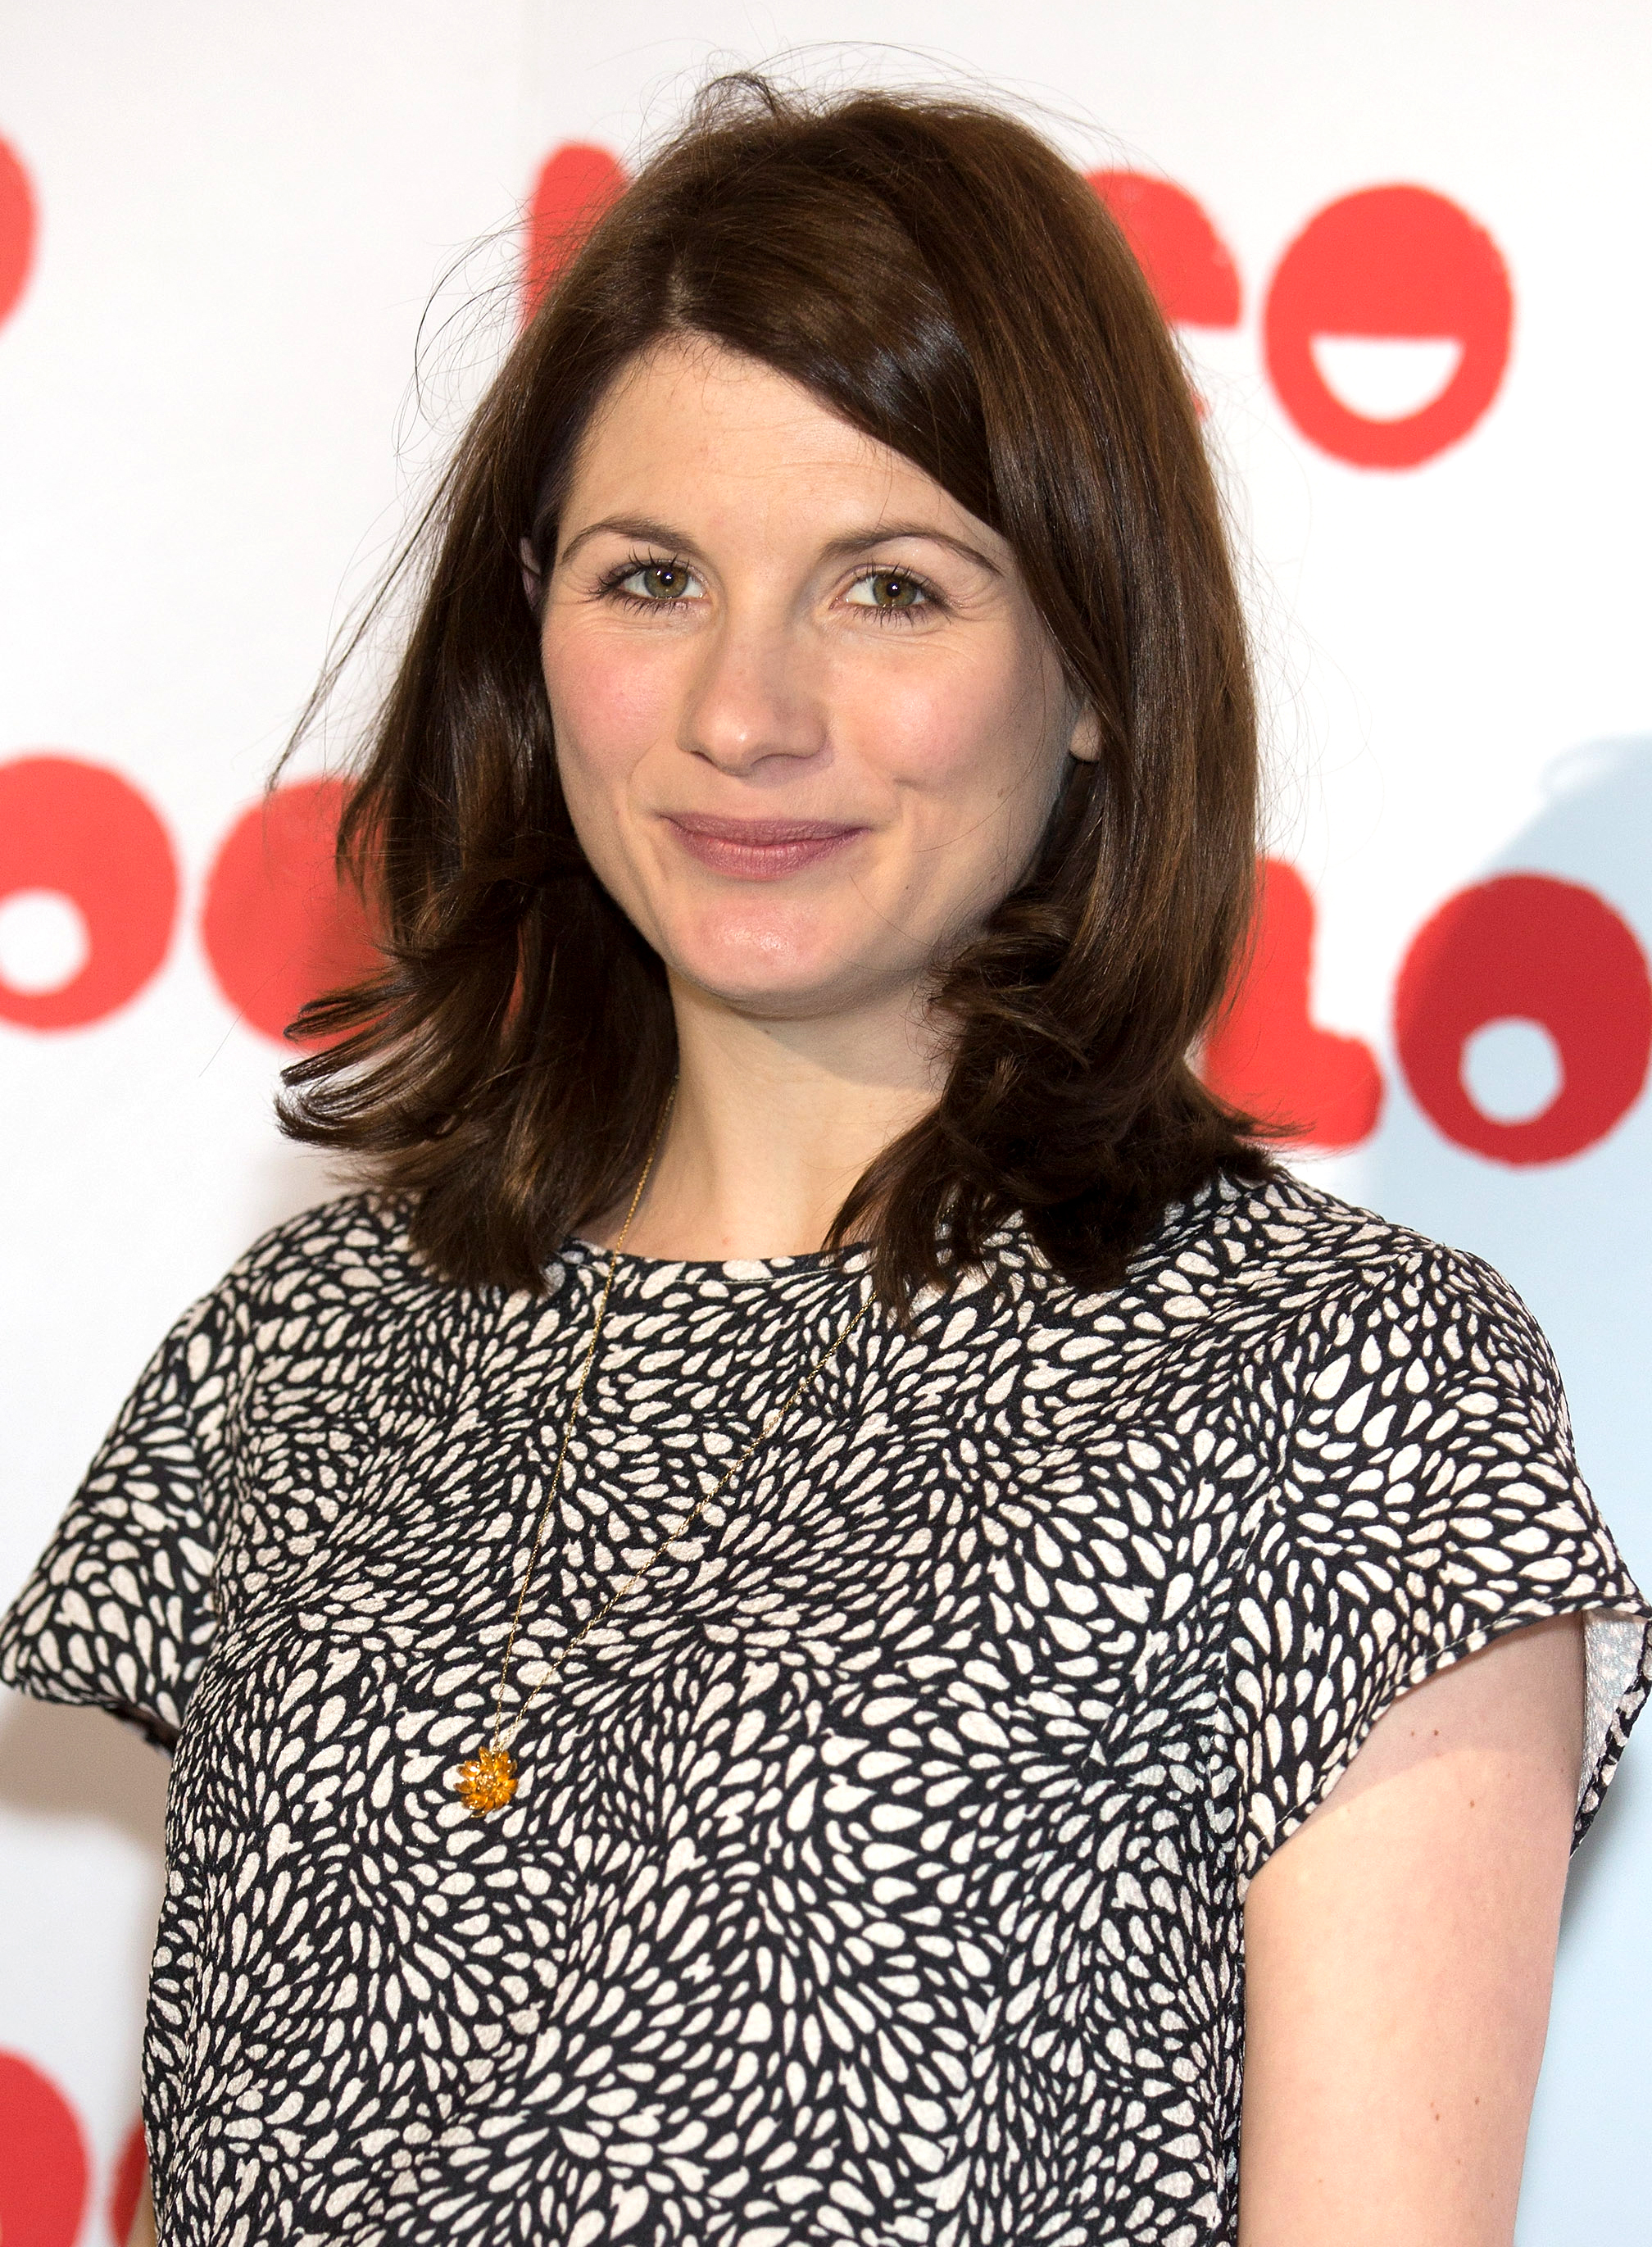 The LOCO London Comedy Film Festival - 'Superbob - Premiere                                    Featuring: Jodie Whittaker                  Where: London, United Kingdom                  When: 24 Jan 2015                  Credit: WENN.com